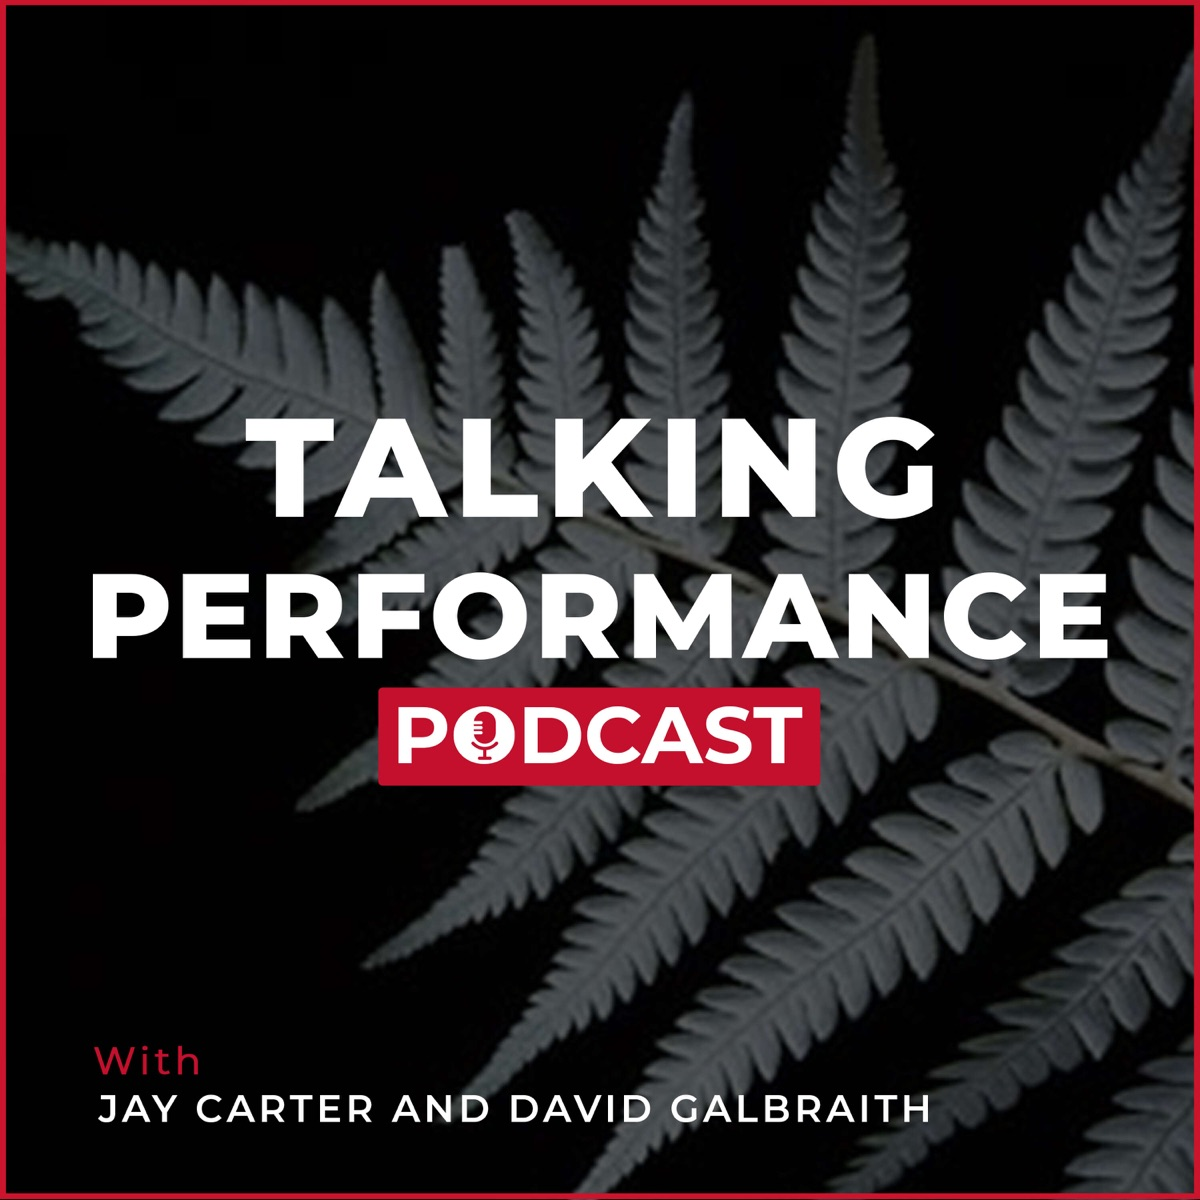 Talking Performance